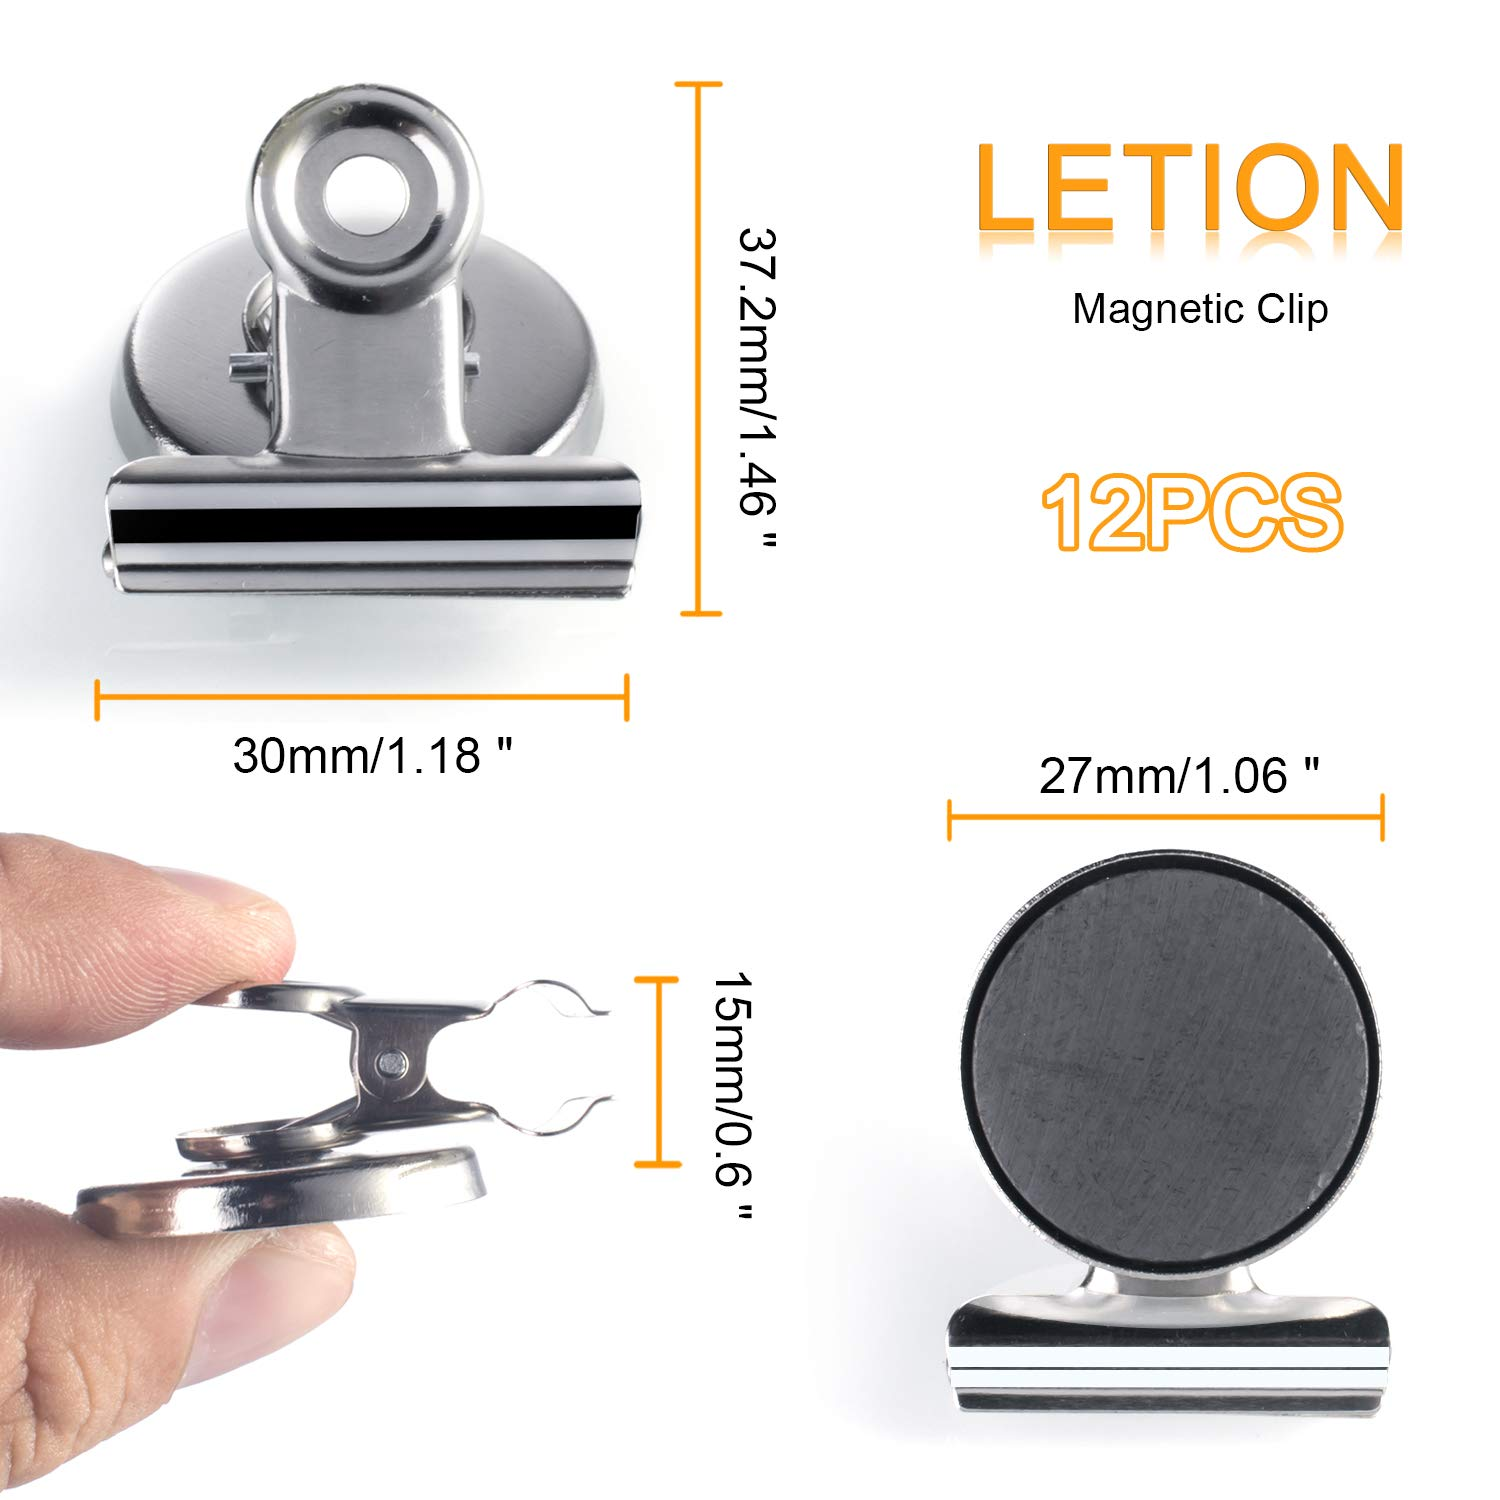 LETION Refrigerator Magnetic Clip, High Magnetic Scratch-proof Fridge Magnet 1.5 inch for Note Photo Receipt Detailed List display on Home& Office& Teaching (12Pcs)